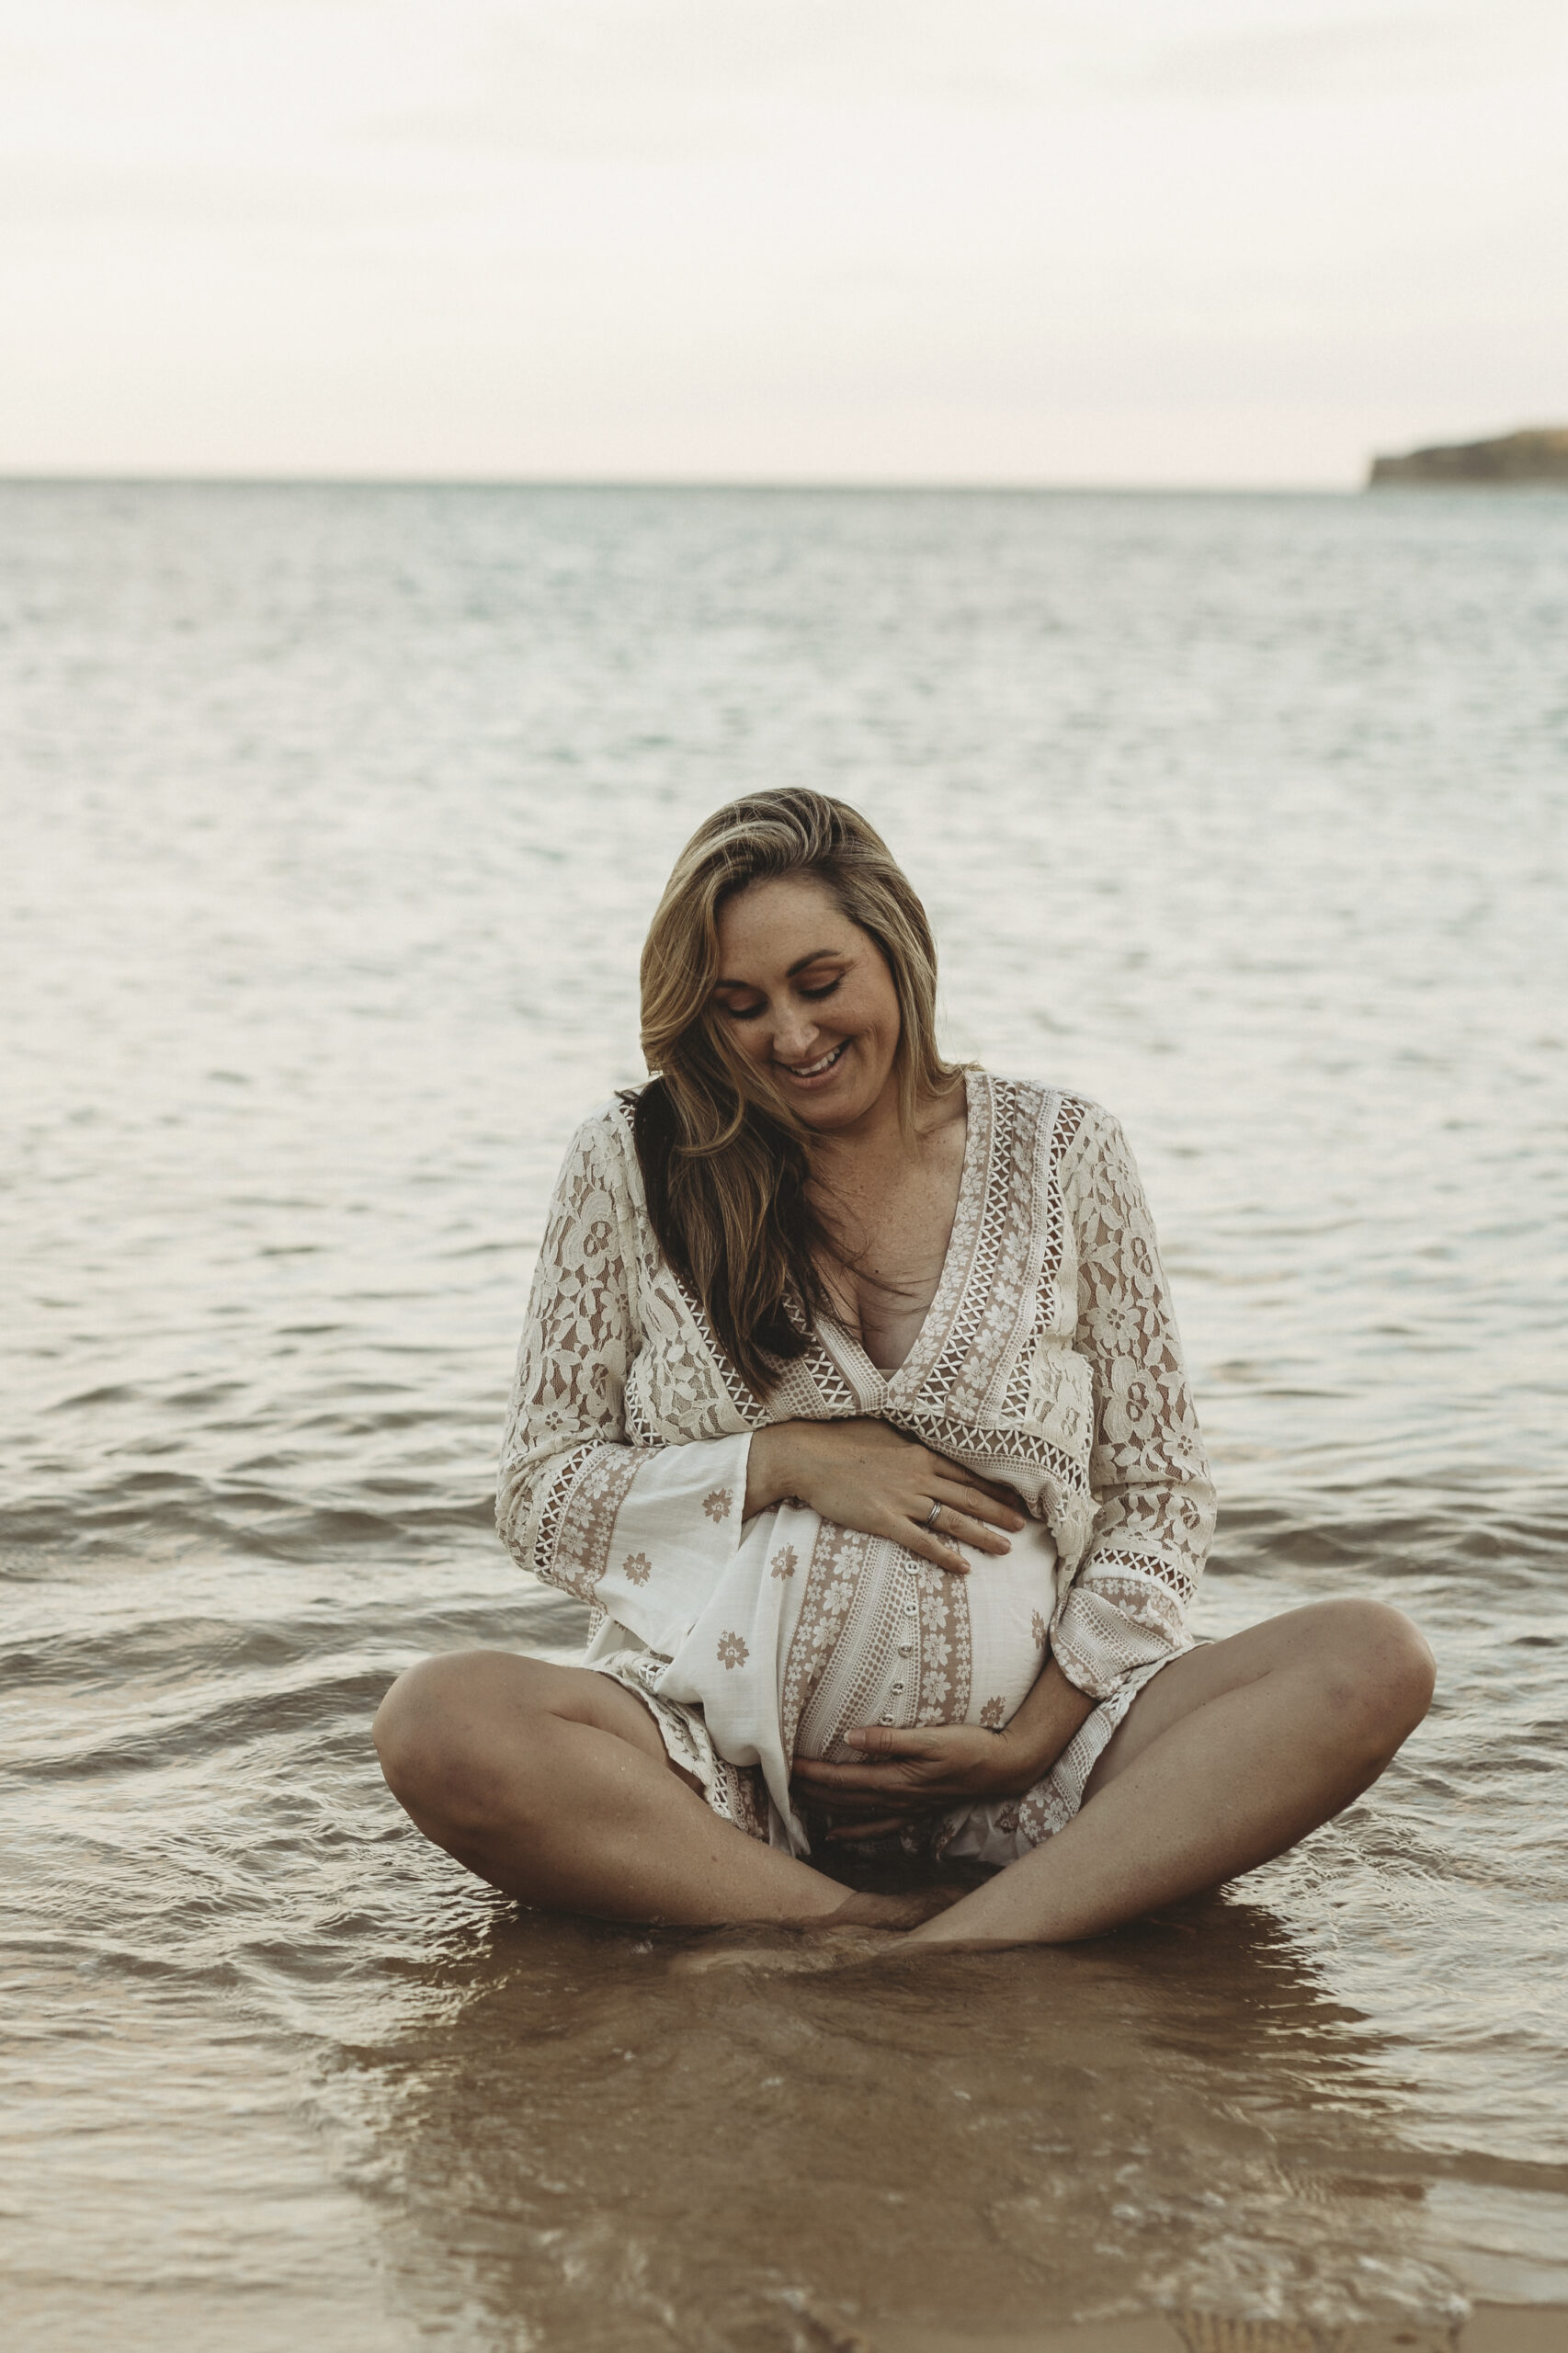 pregnancy maternity photography beach sunset